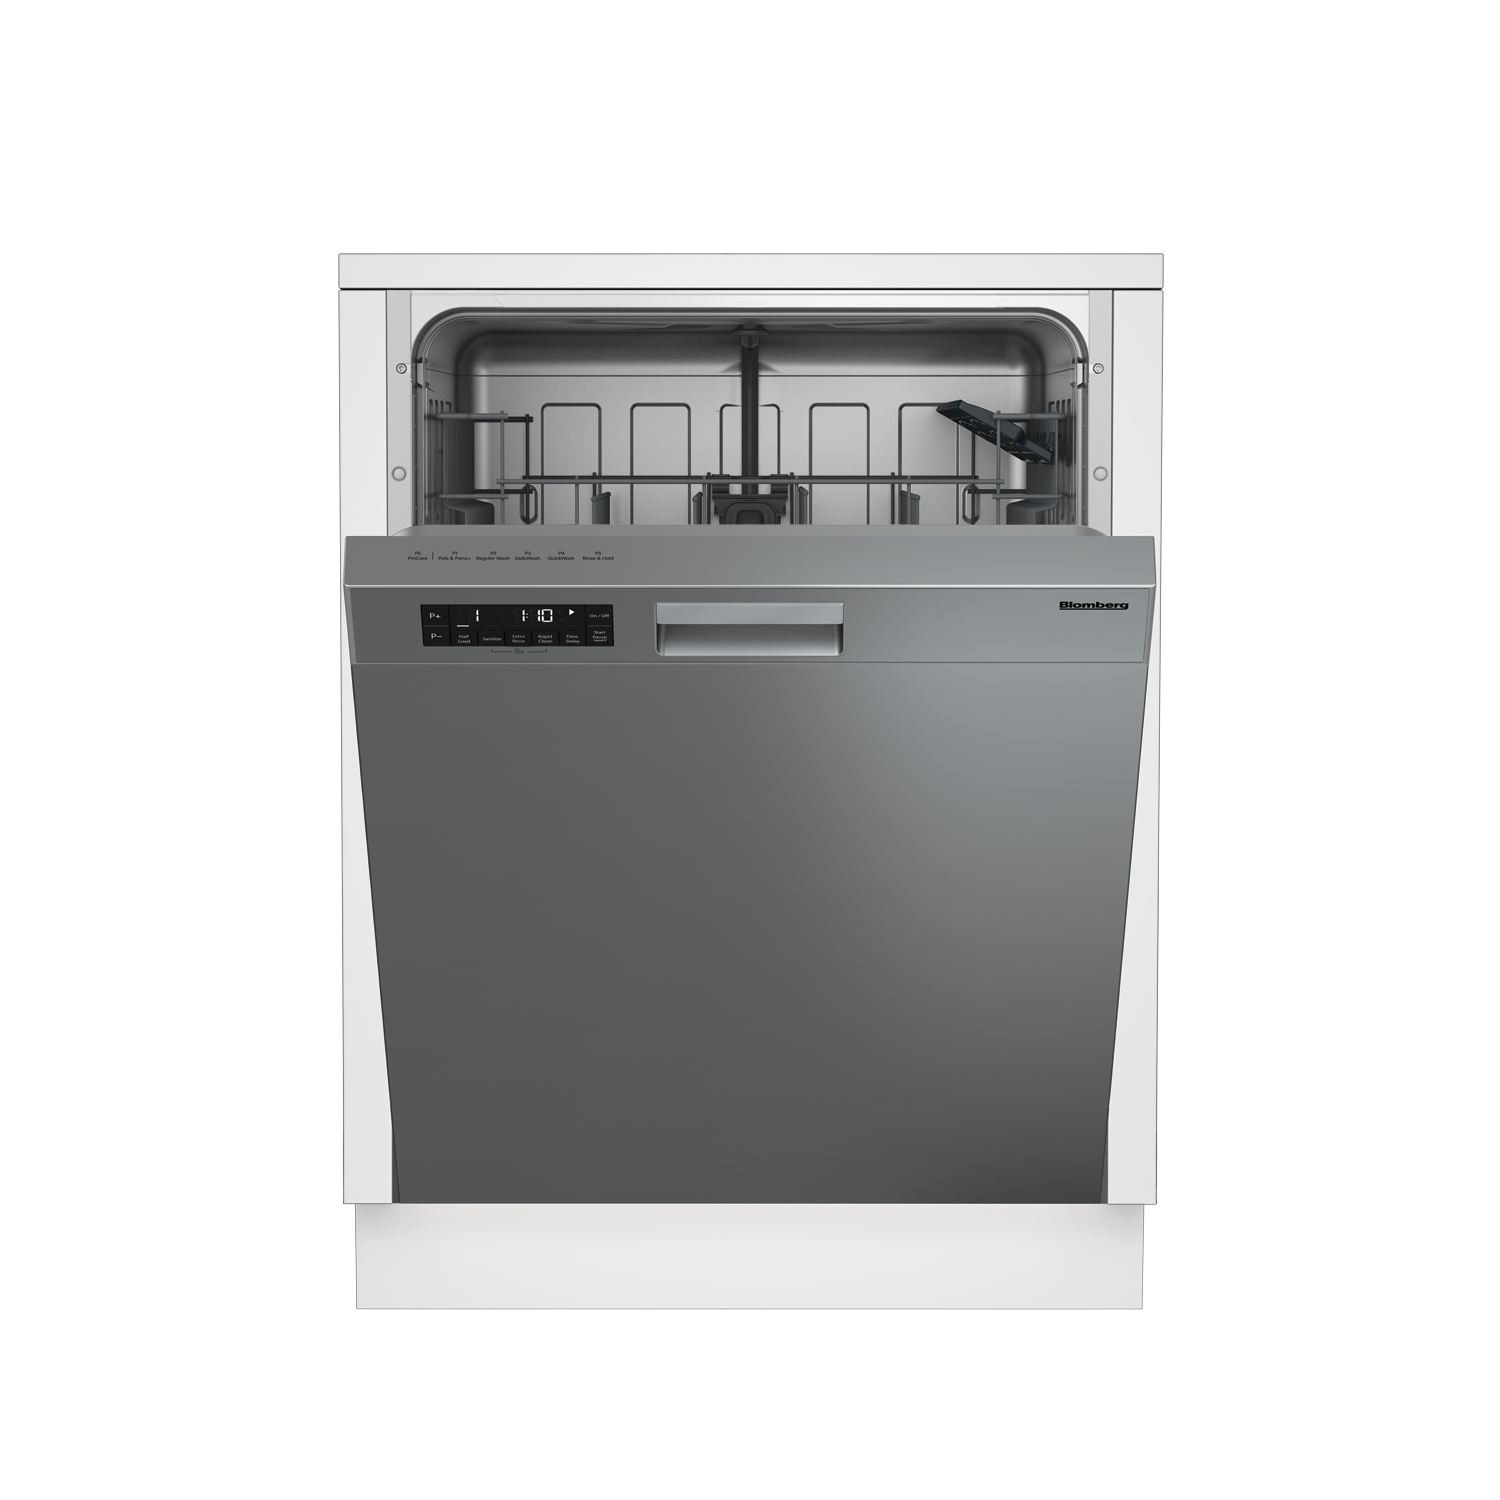 of two style shocking astonishing image hidden miele cliff inspiration dishwasher and under picture sink kitchen drawer xf ideas in